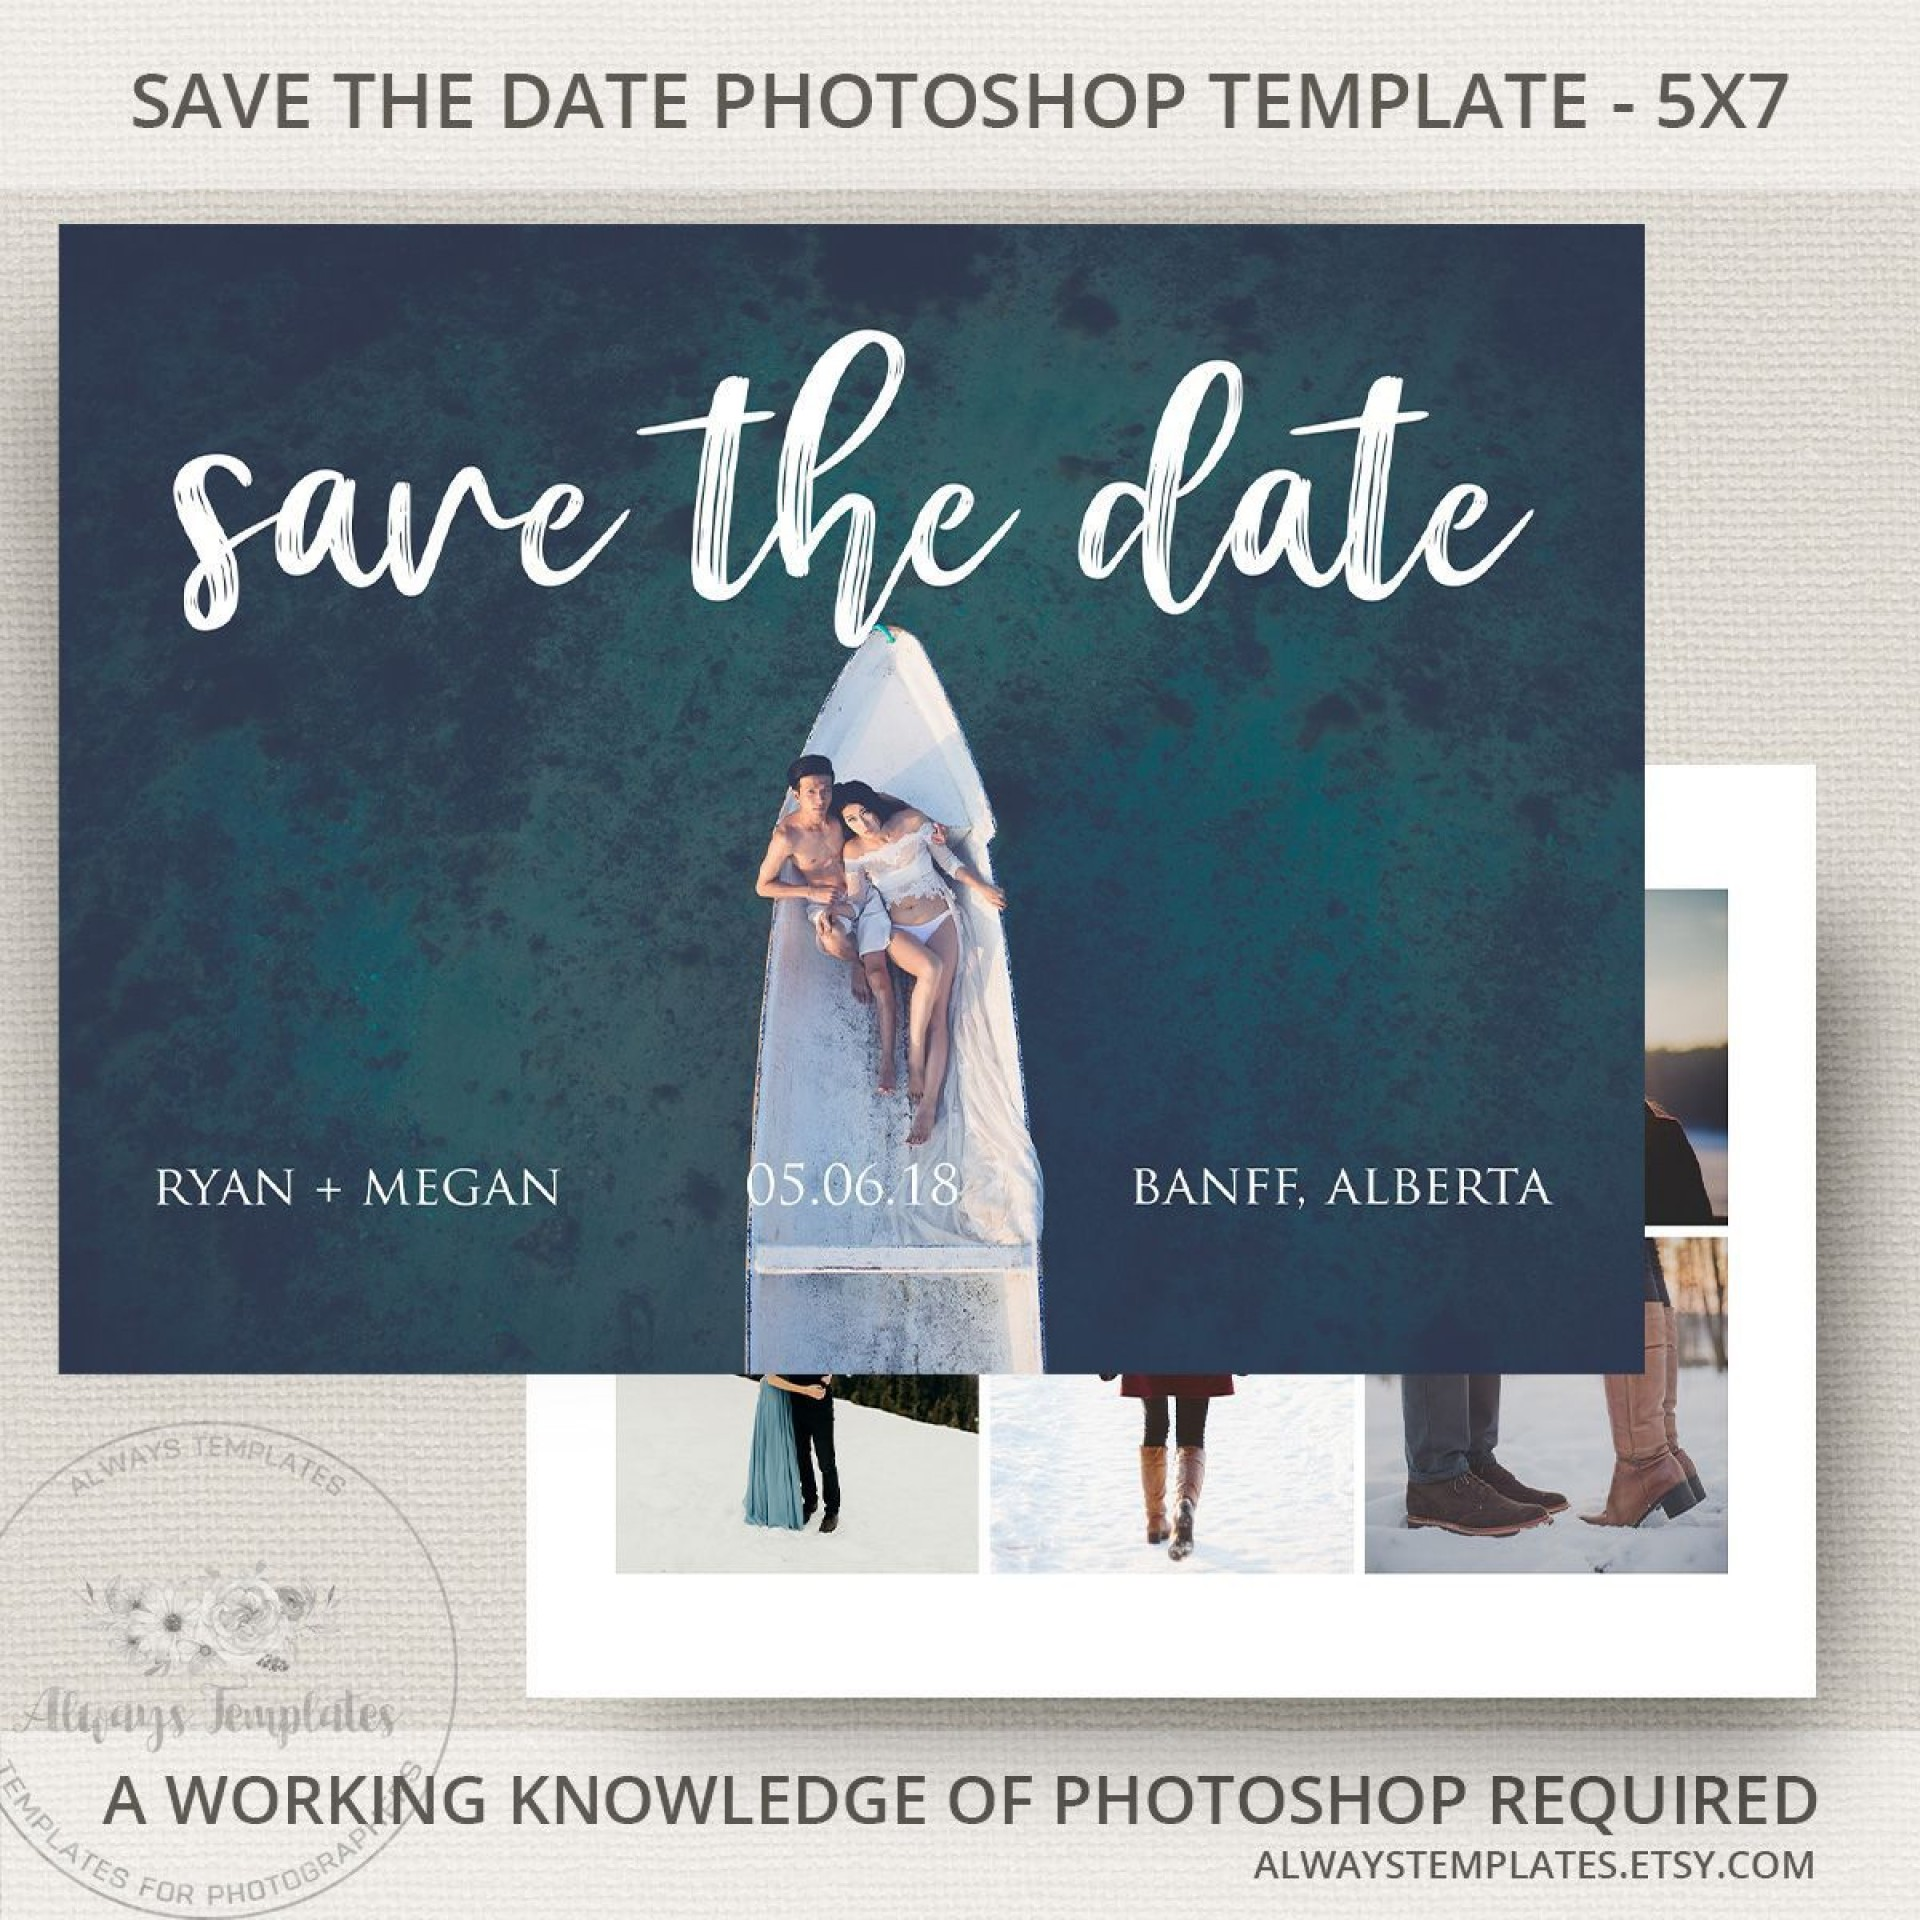 000 Top Save The Date Template Photoshop Photo  Adobe Card1920